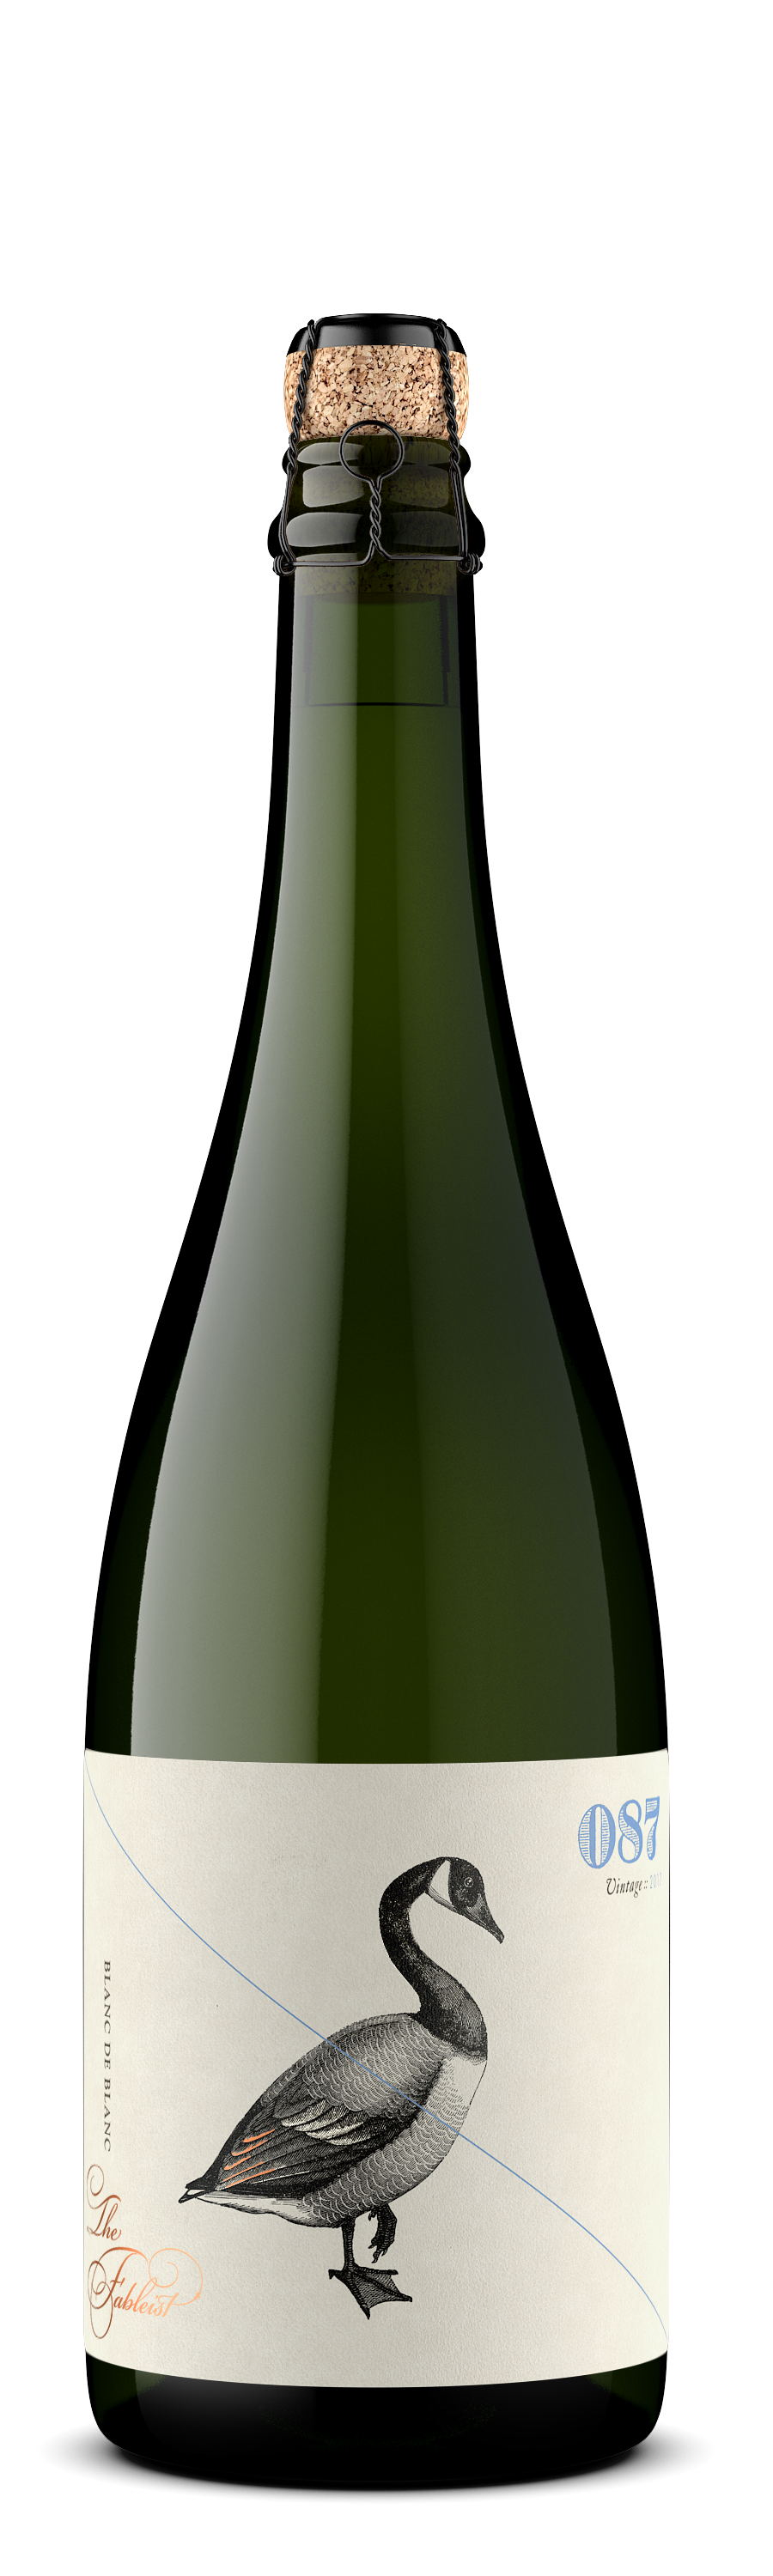 Fableist 2018 Blanc de Blanc, Central Coast COMING SOON!